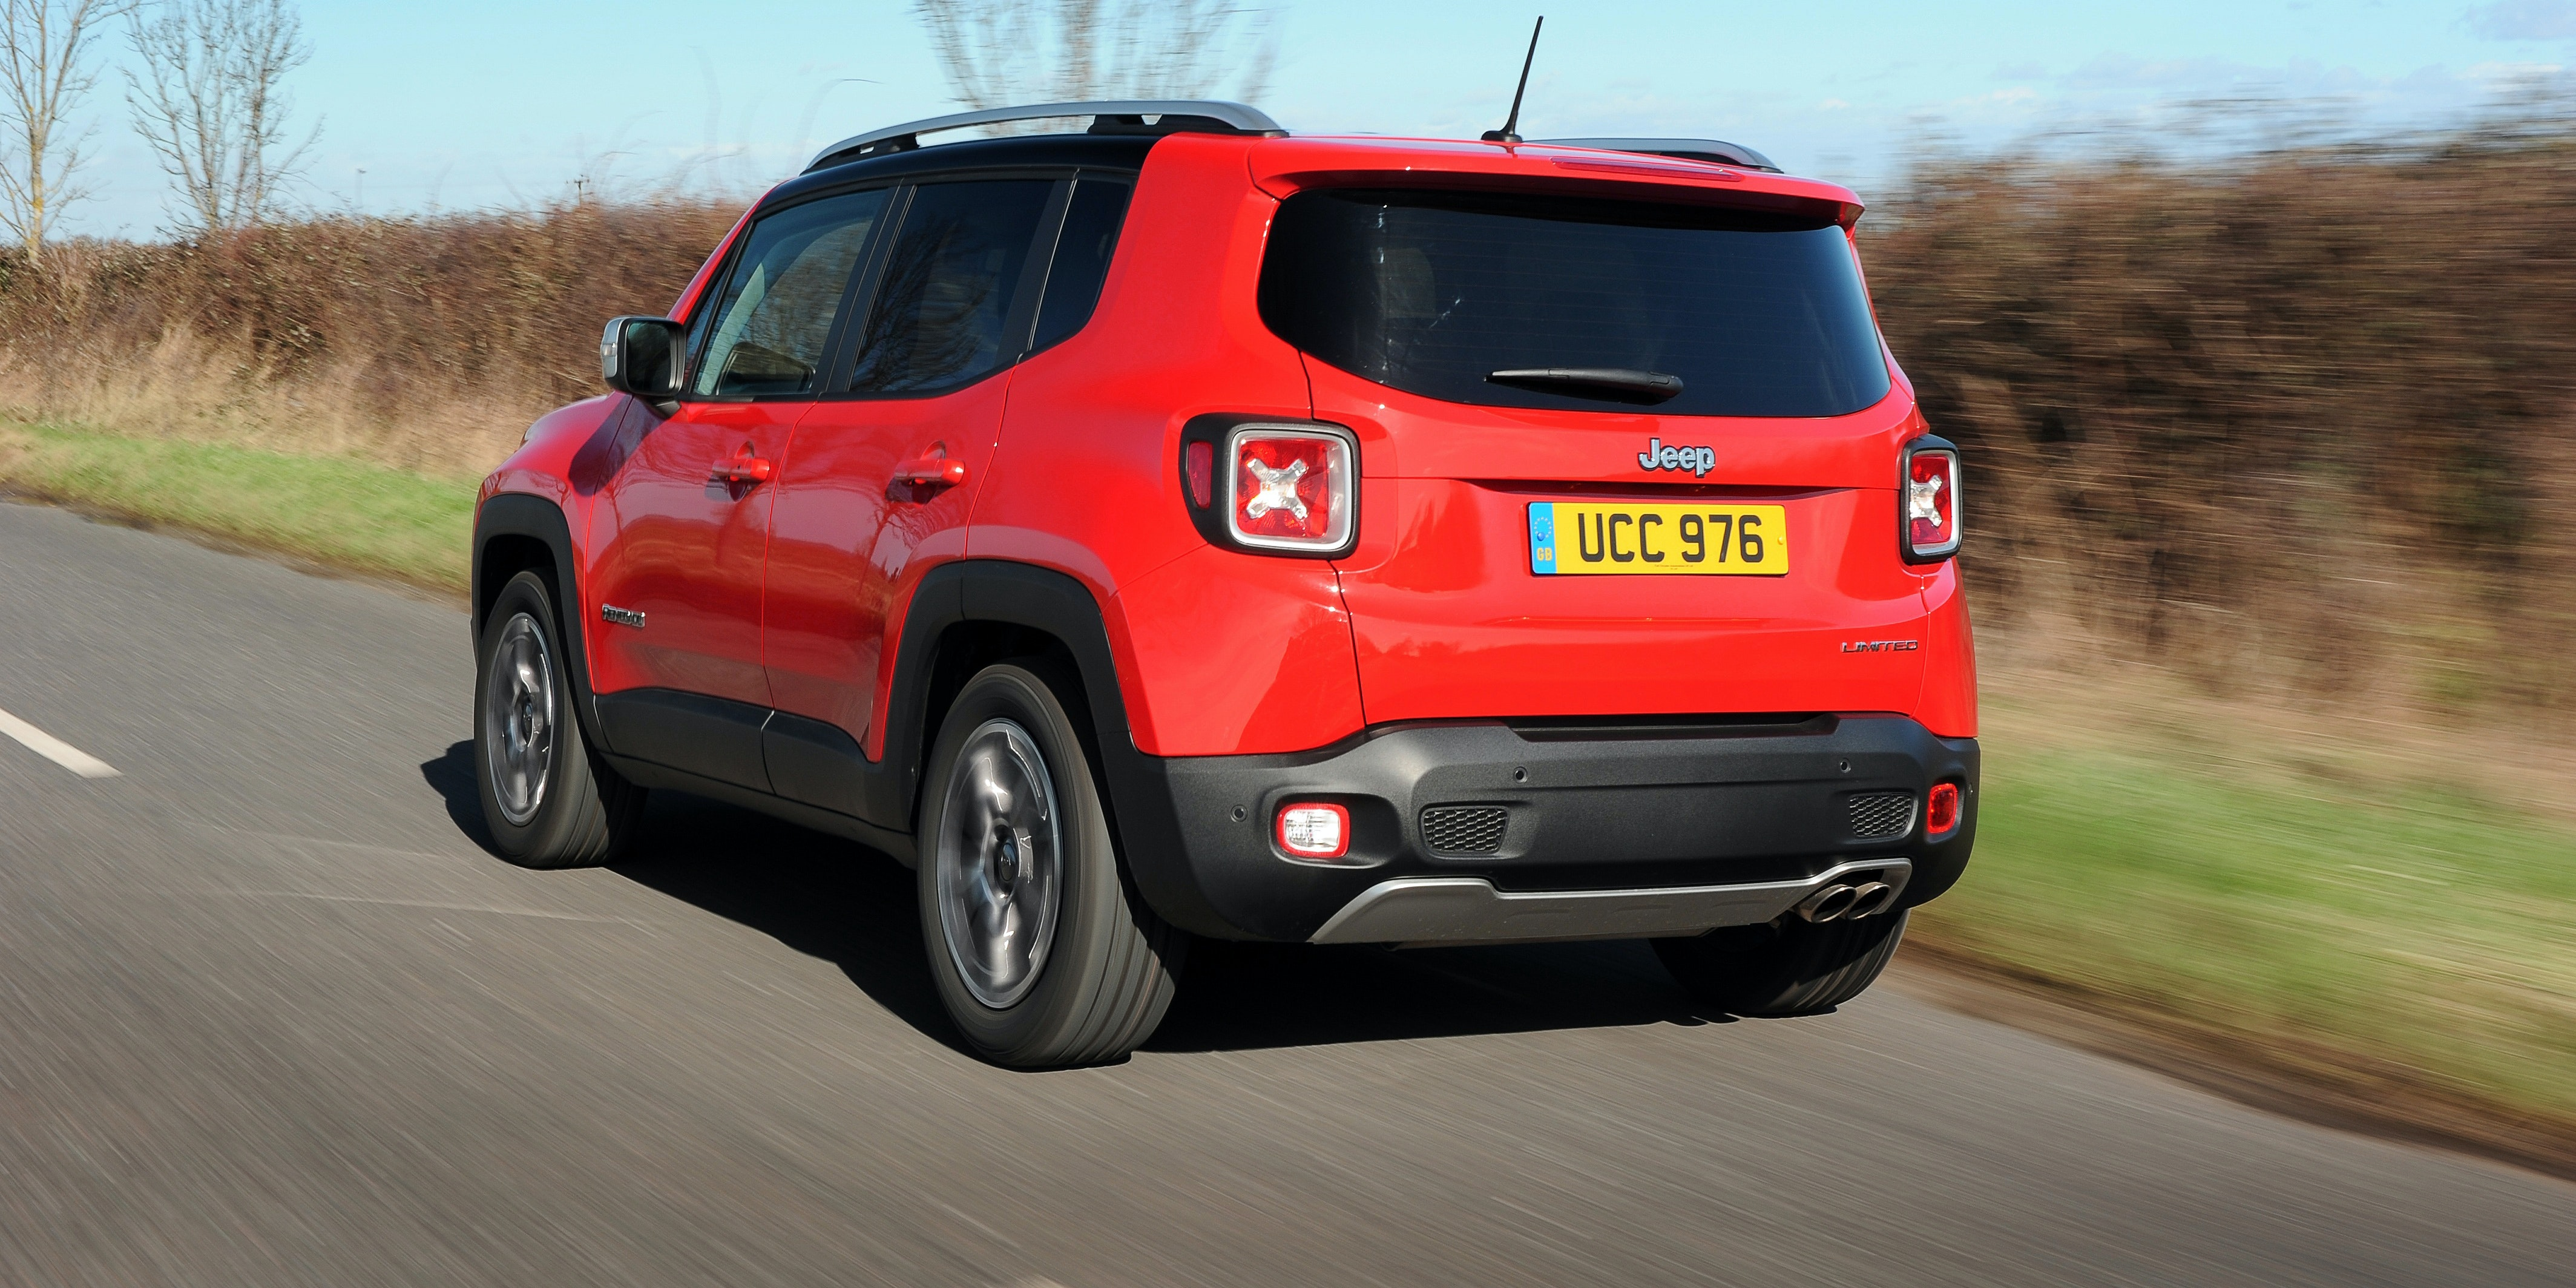 There are some big blind spots out the front and back of the Renegade